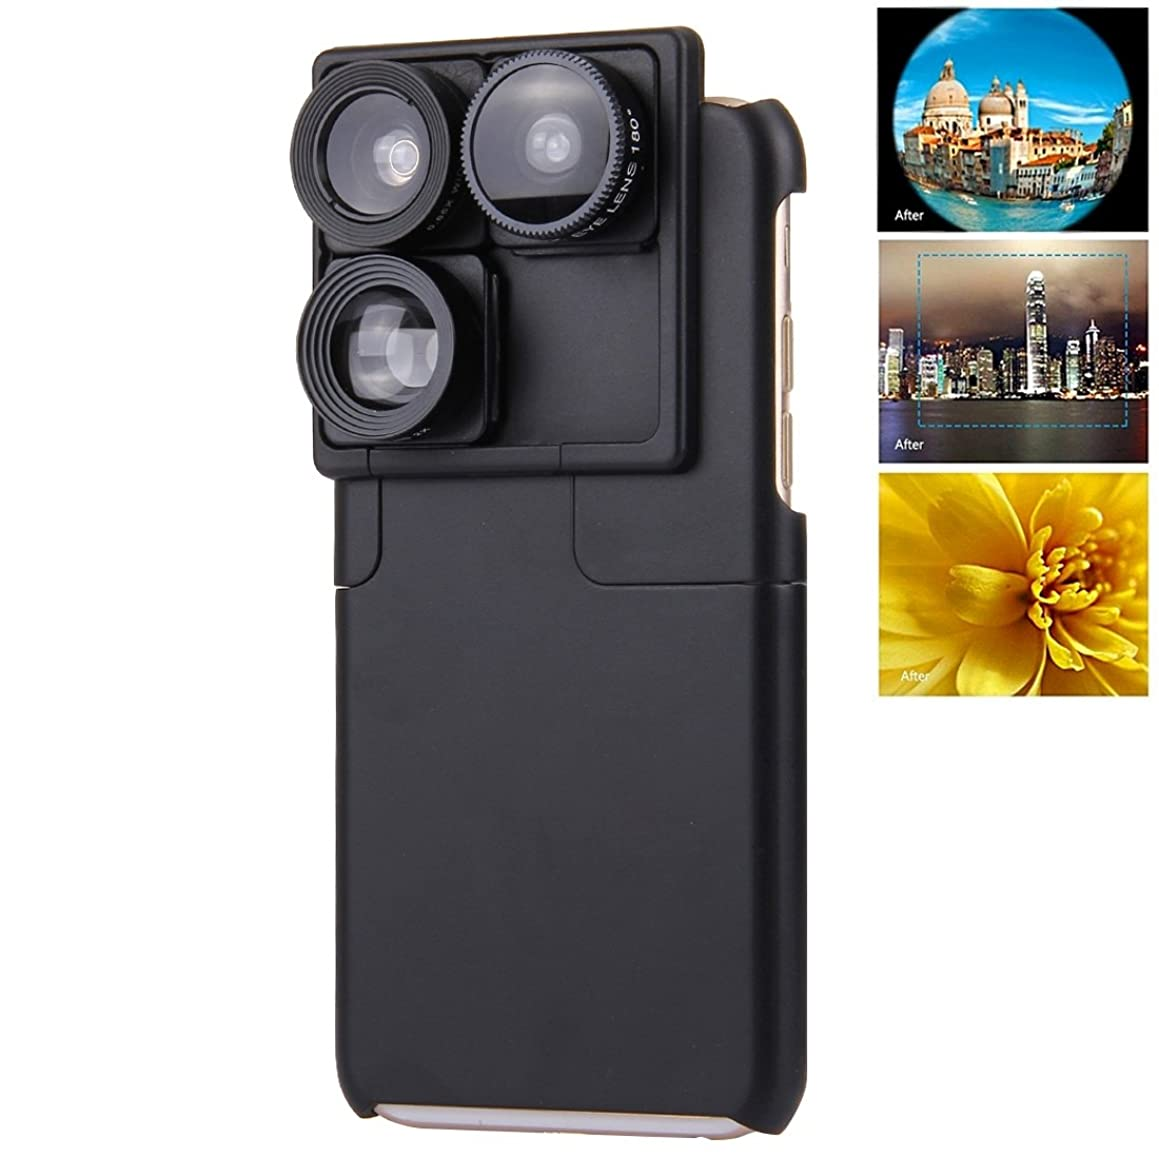 Beautiful Cases & Covers PICKOGEN 4 in 1 0.65X Wide Angle &180 Degree CD Hawk Eye Lens &2X iZiZ Telephoto Lens &Phone Case Camera Lens Phone Case for iPhone 6 Plus / 6s Plus for iPhone